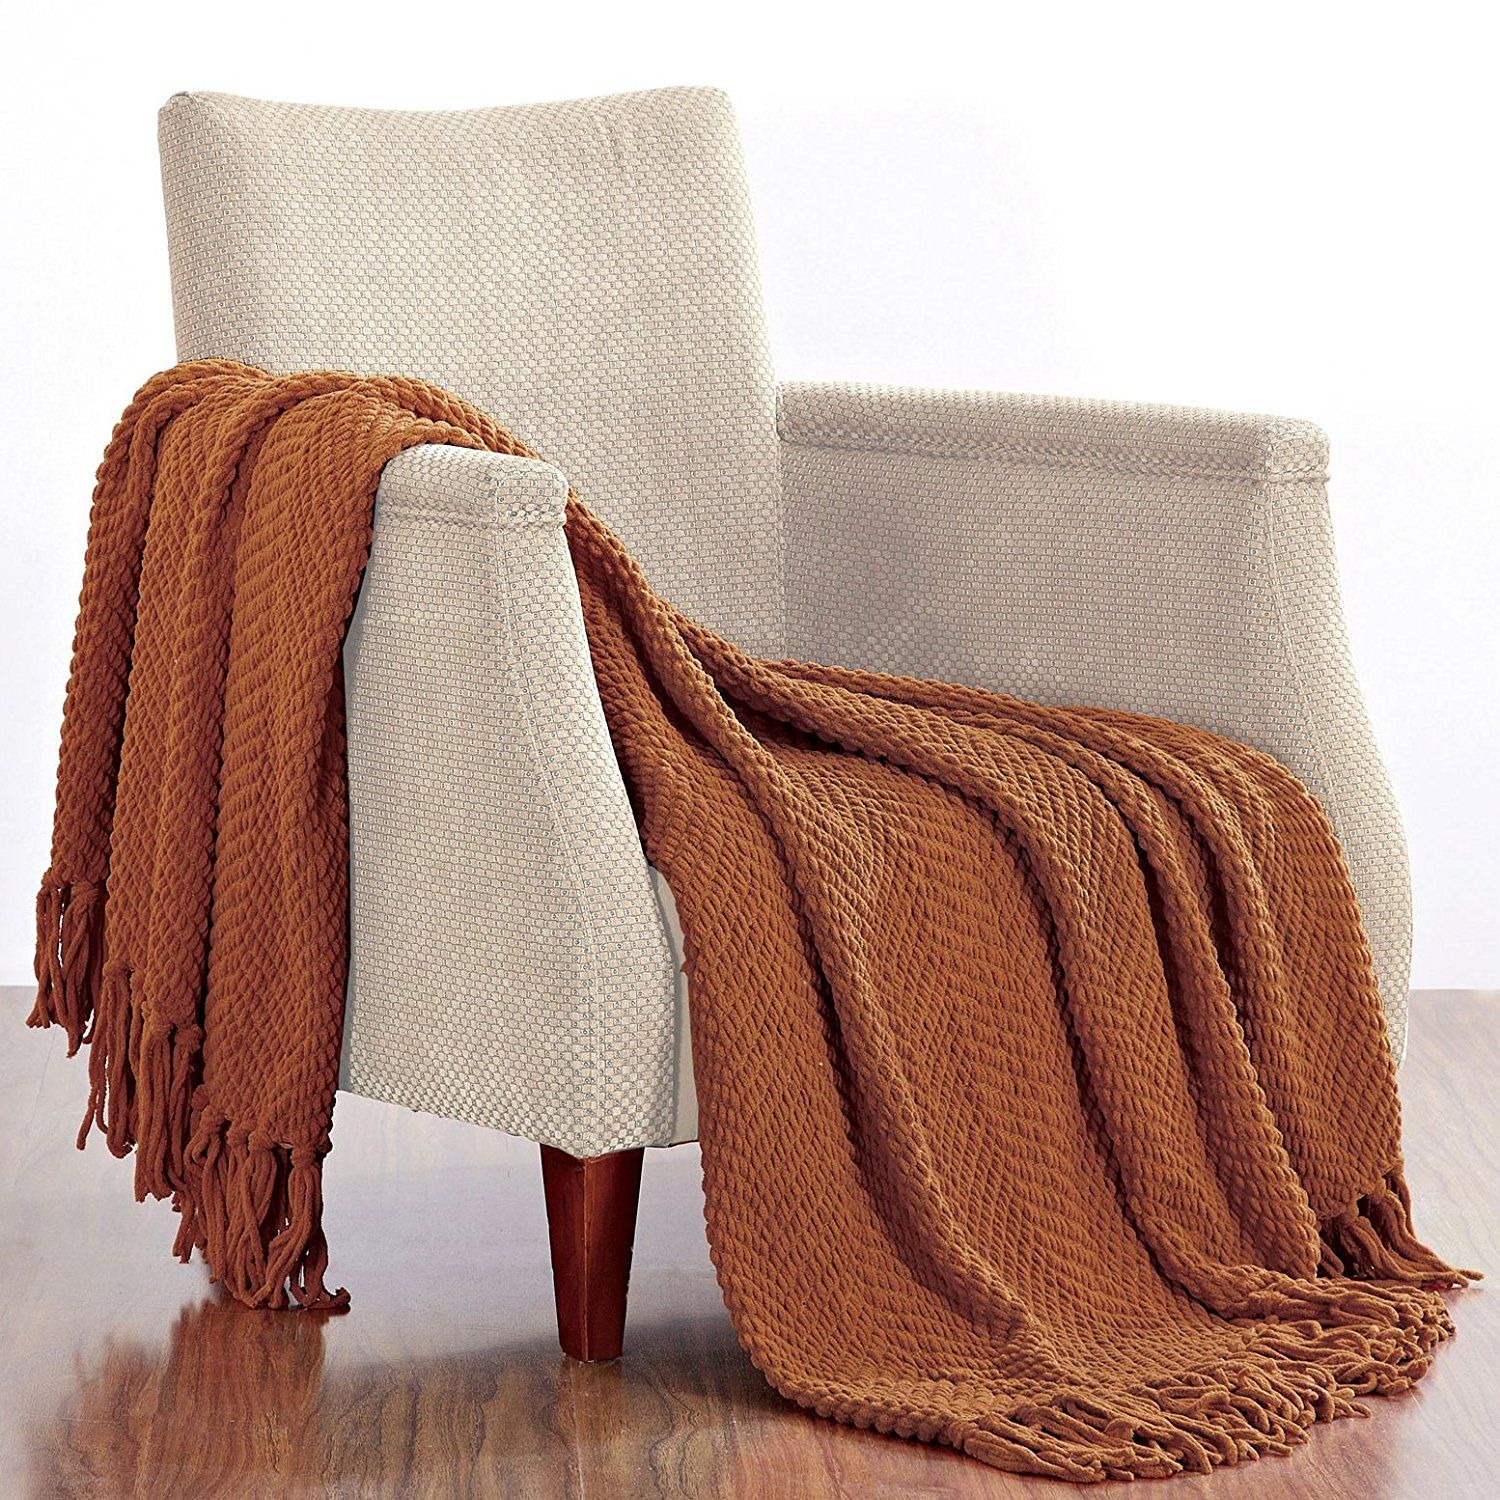 Throw Blankets For Couches Awesome Boon Knitted Tweed Throw Couch Cover Blanket 50 X 60 Rust  Throw Design Decoration